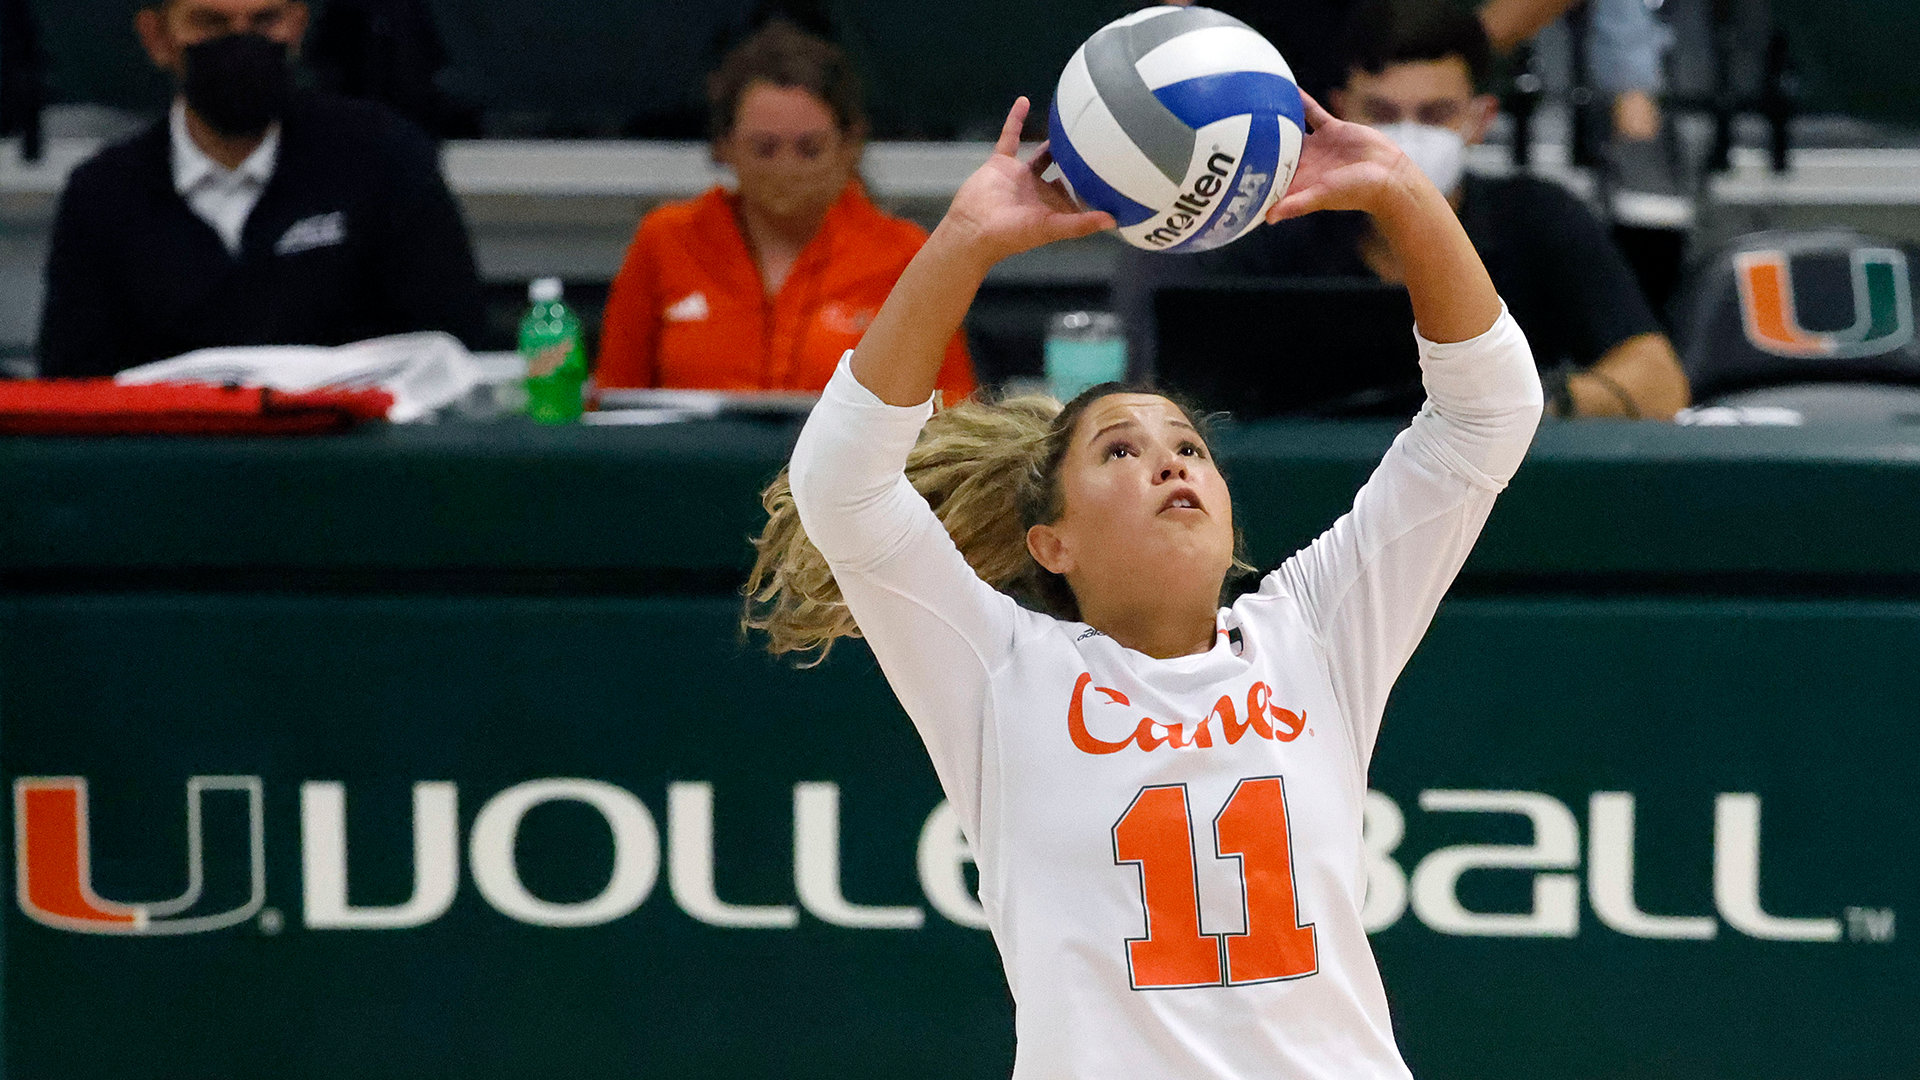 Hispanic Heritage Runs Strong in Canes Volleyball Trio